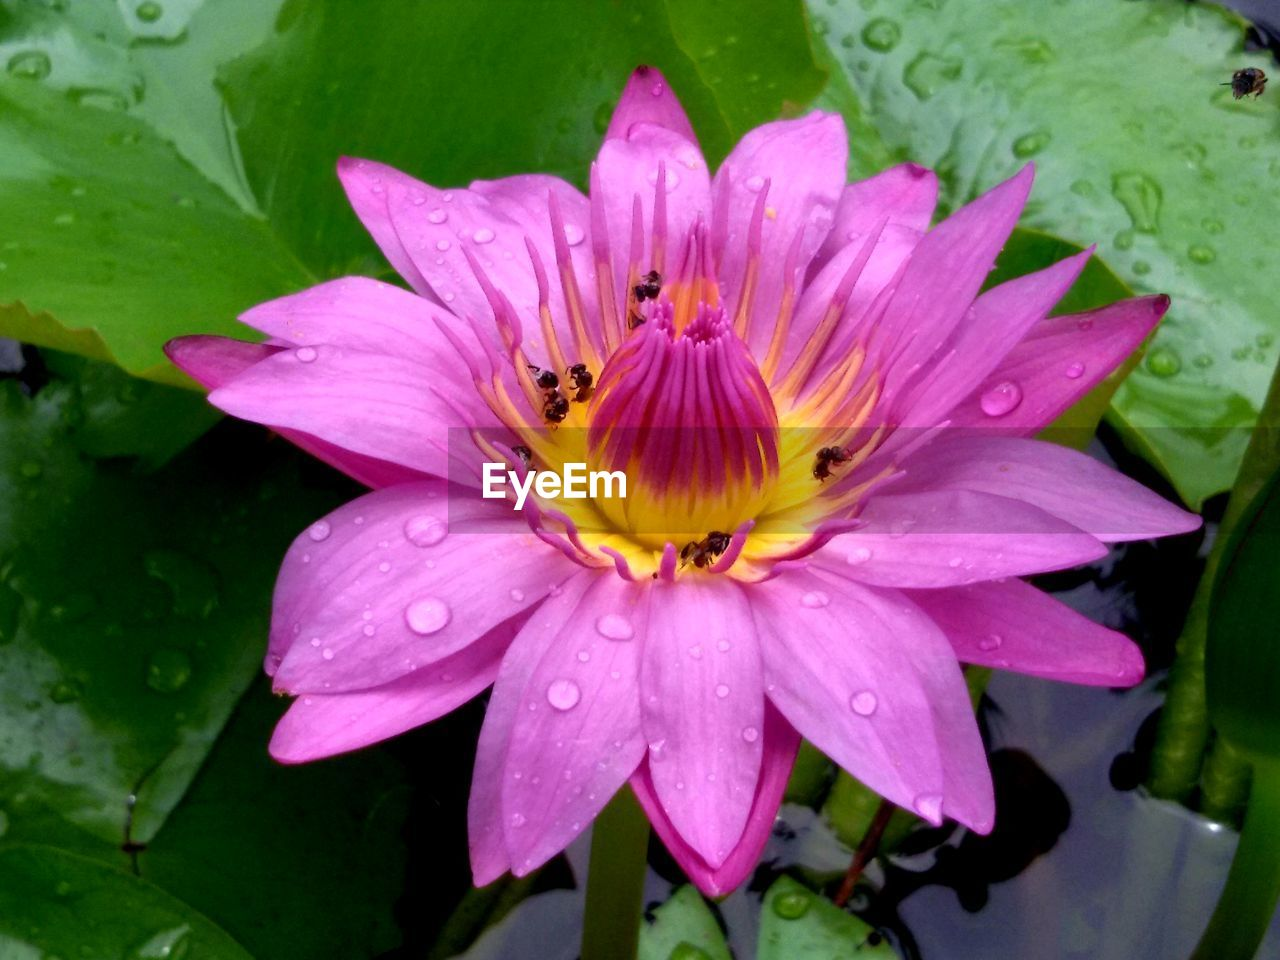 flower, flowering plant, beauty in nature, petal, plant, freshness, growth, fragility, water, flower head, vulnerability, inflorescence, close-up, pollen, invertebrate, nature, pink color, leaf, drop, no people, pollination, rain, dew, purple